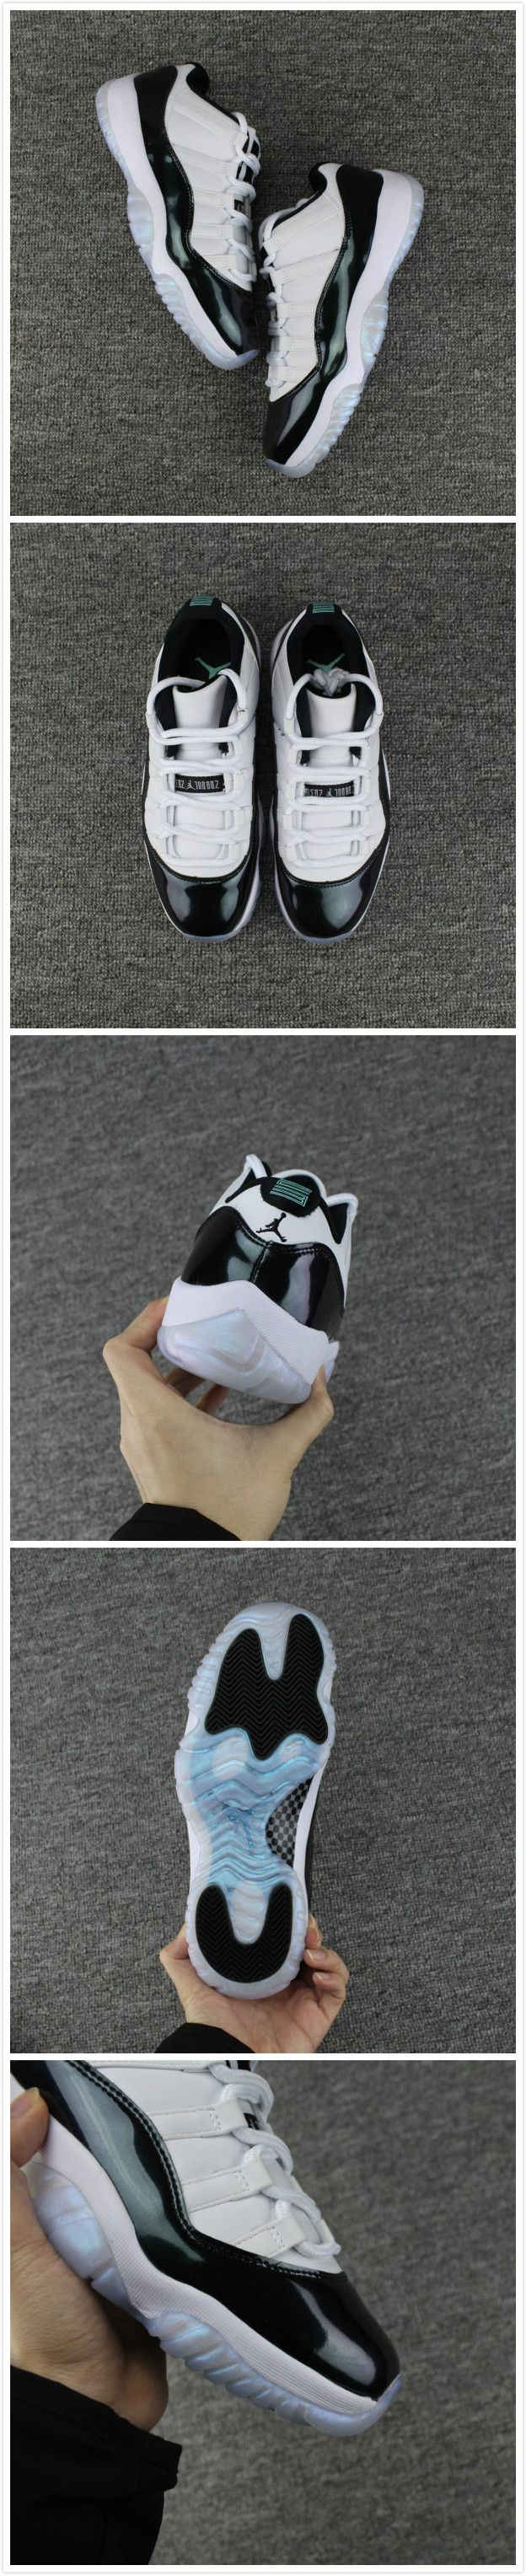 cheap Air Jordan 11 Low Easter White/Emerald Rise-Black Unisex shoes Free Shipping Size:36-47 WhatsApp:8613328373859